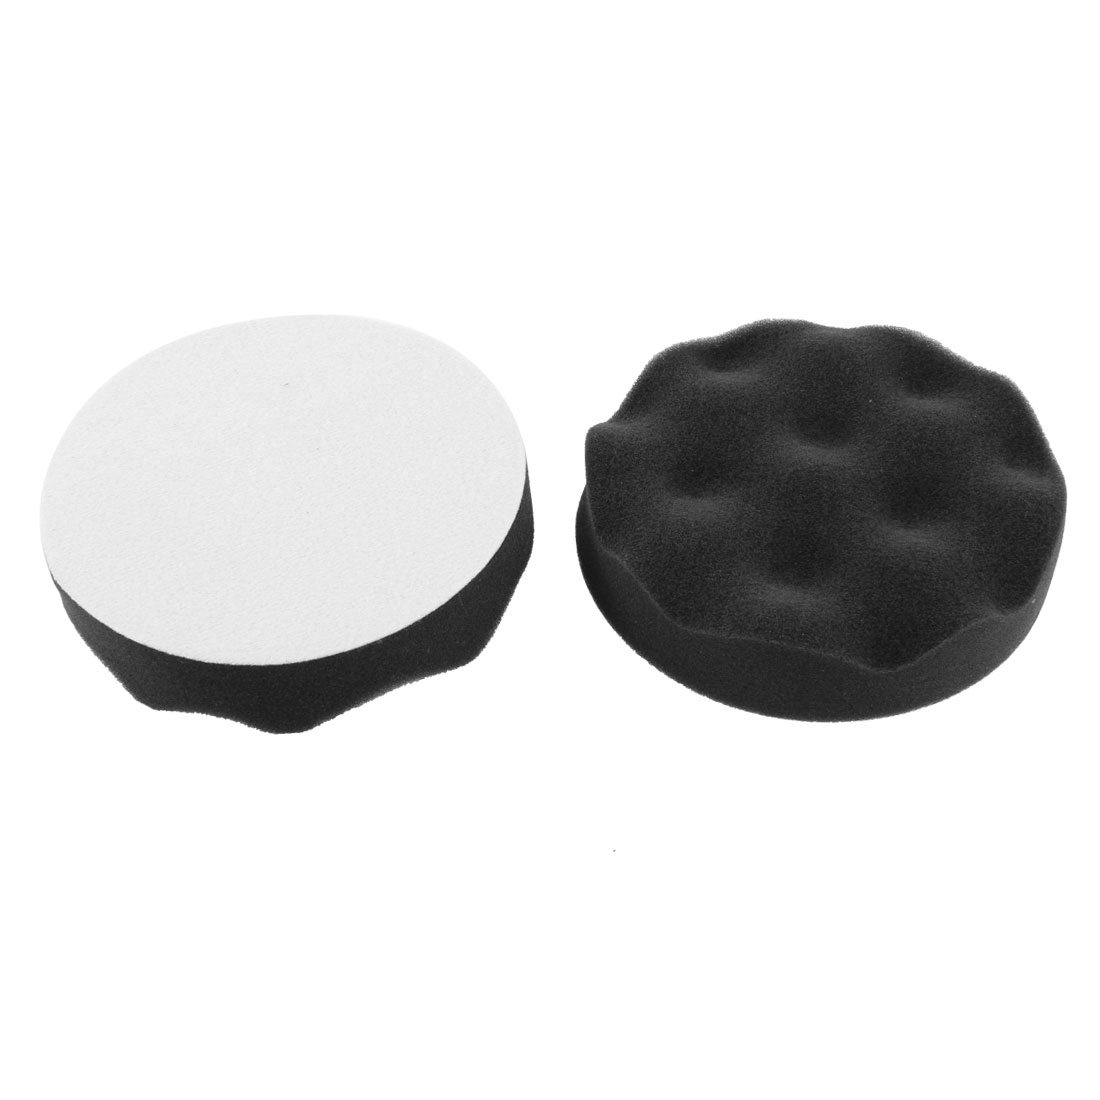 "2pcs Black Wave Waxing Polishing Sponge Cleaning Pads 5"" Diameter for Car Truck"